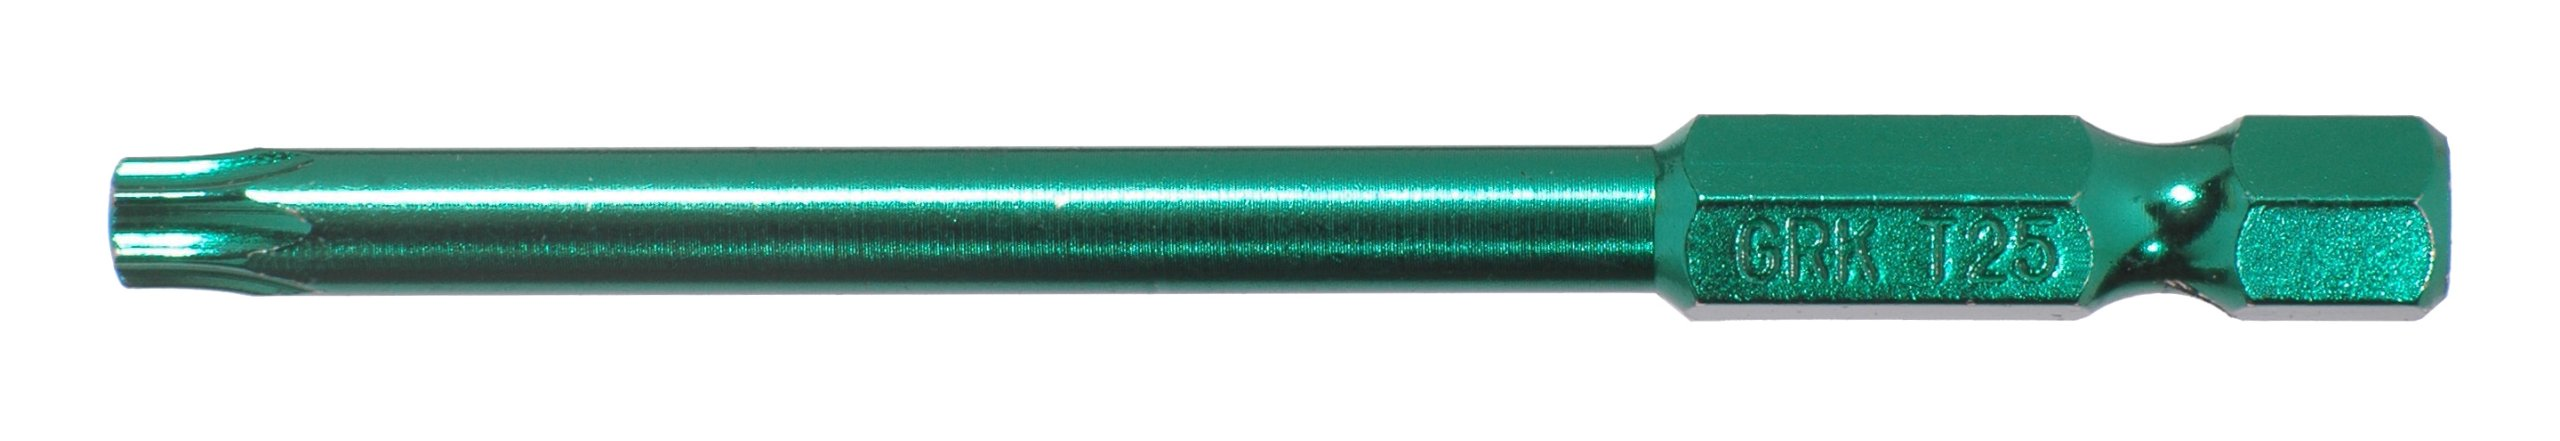 GRK 772691864451 T25-3-Inch Bits in Green Containing Equal to 25 Bits, 1-Pack